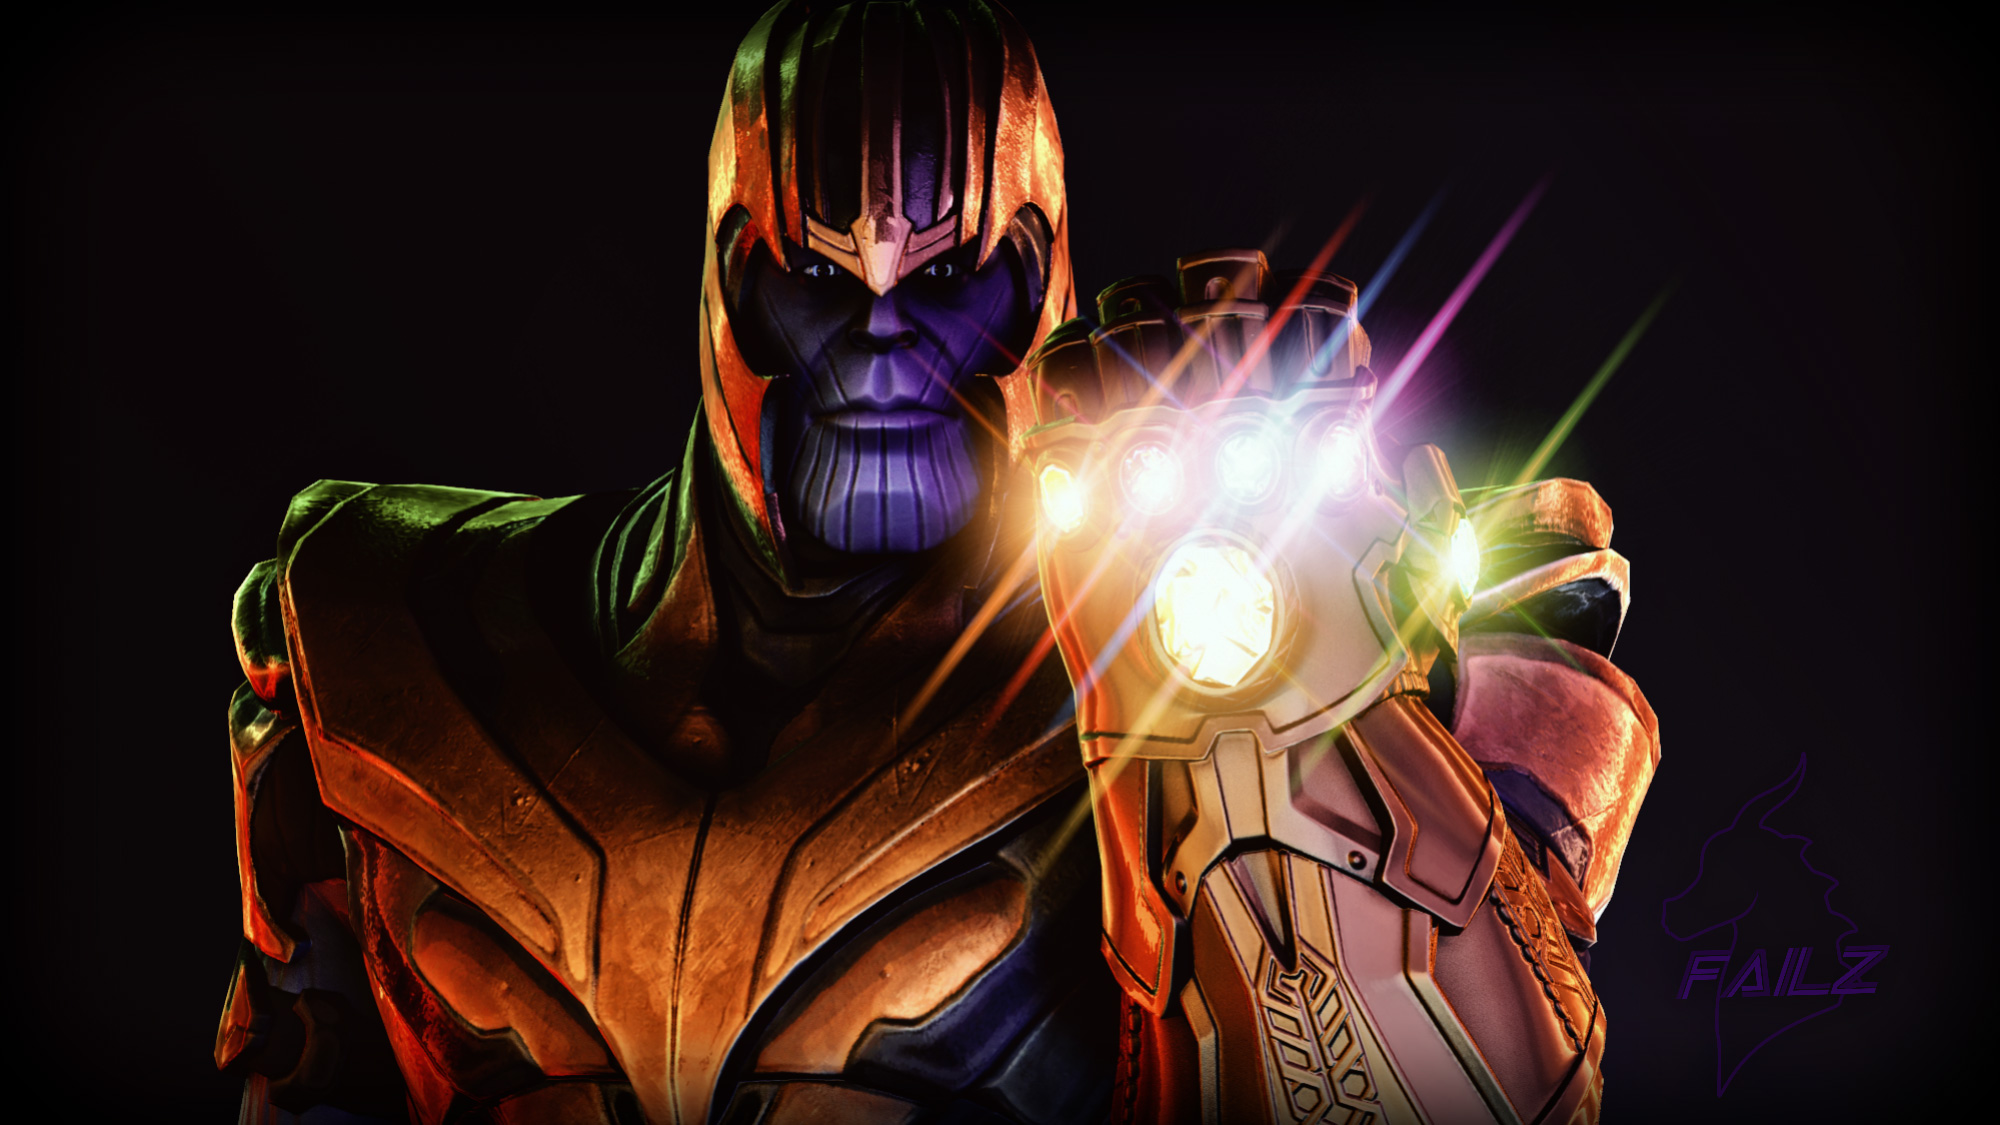 Thanos Infinity Gauntlet Wallpapers Hd Wallpapers